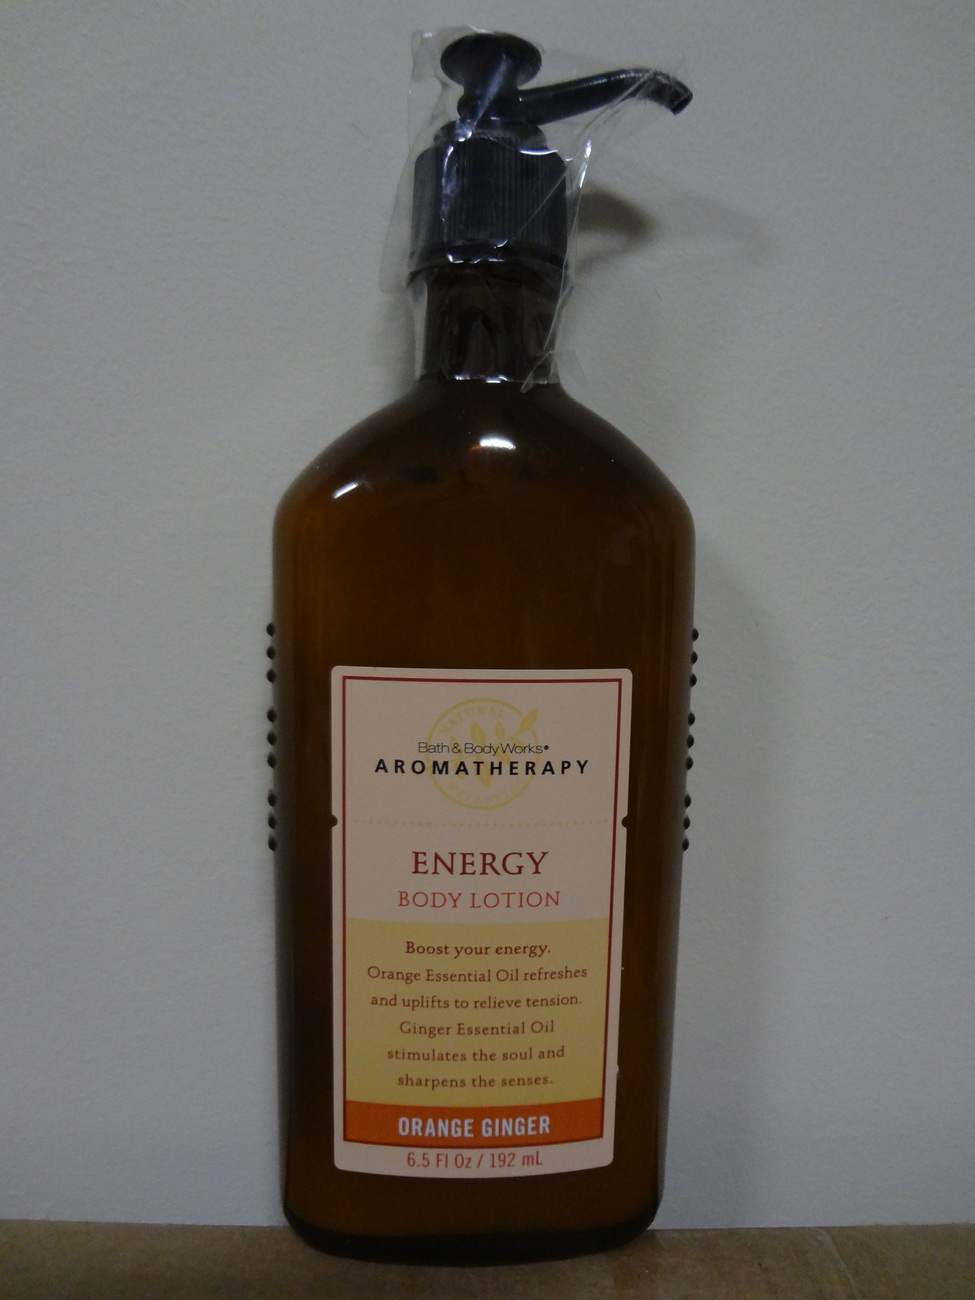 Bath & Body Works Aromatherapy ORANGE GINGER Energy Body Lotion 6.5 oz / 192 ml